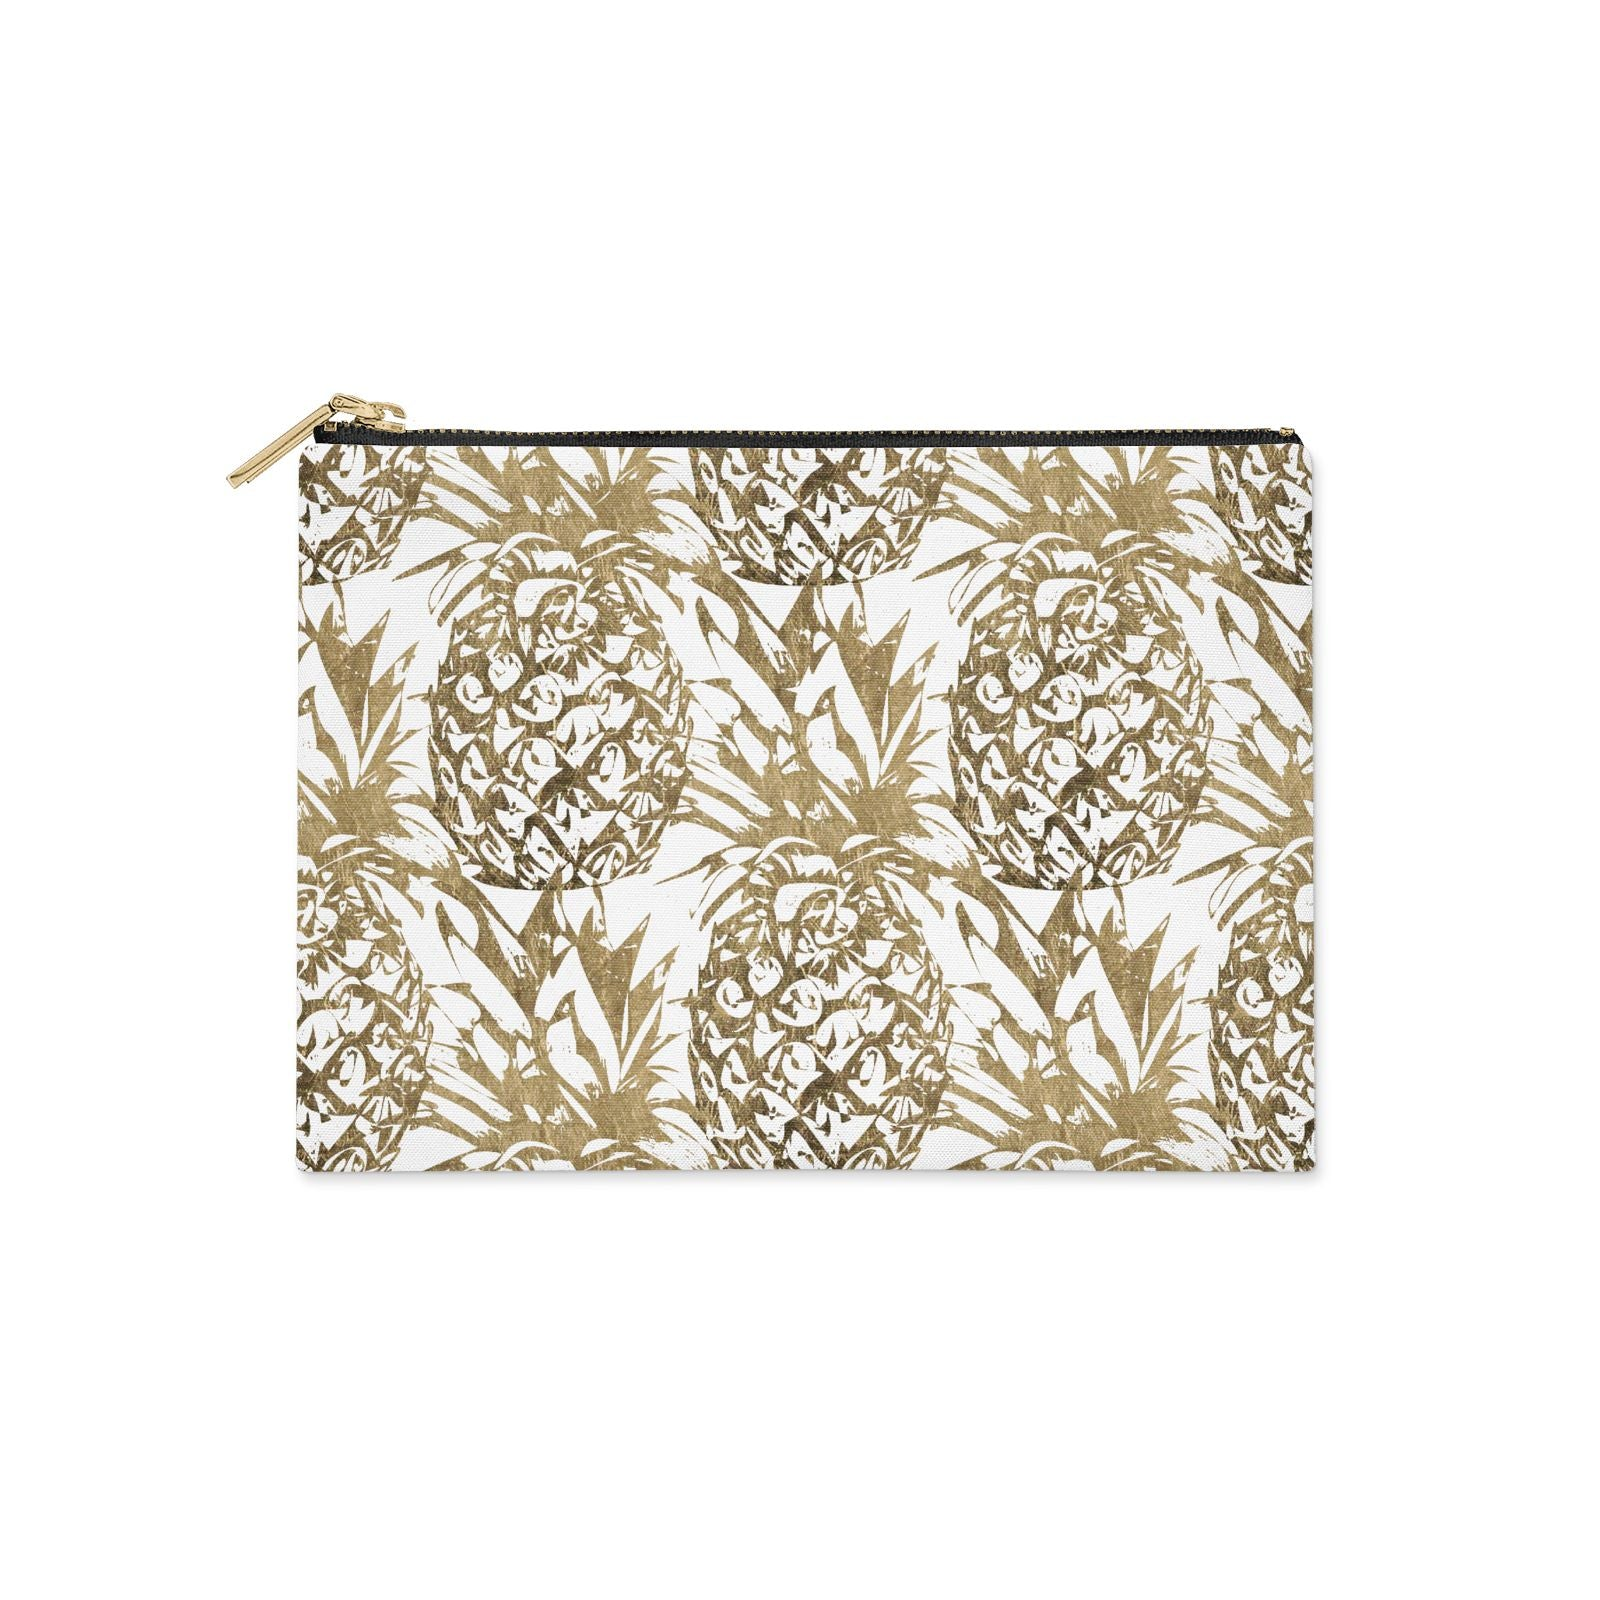 Gold Pineapple Fruit Clutch Bag Zipper Pouch